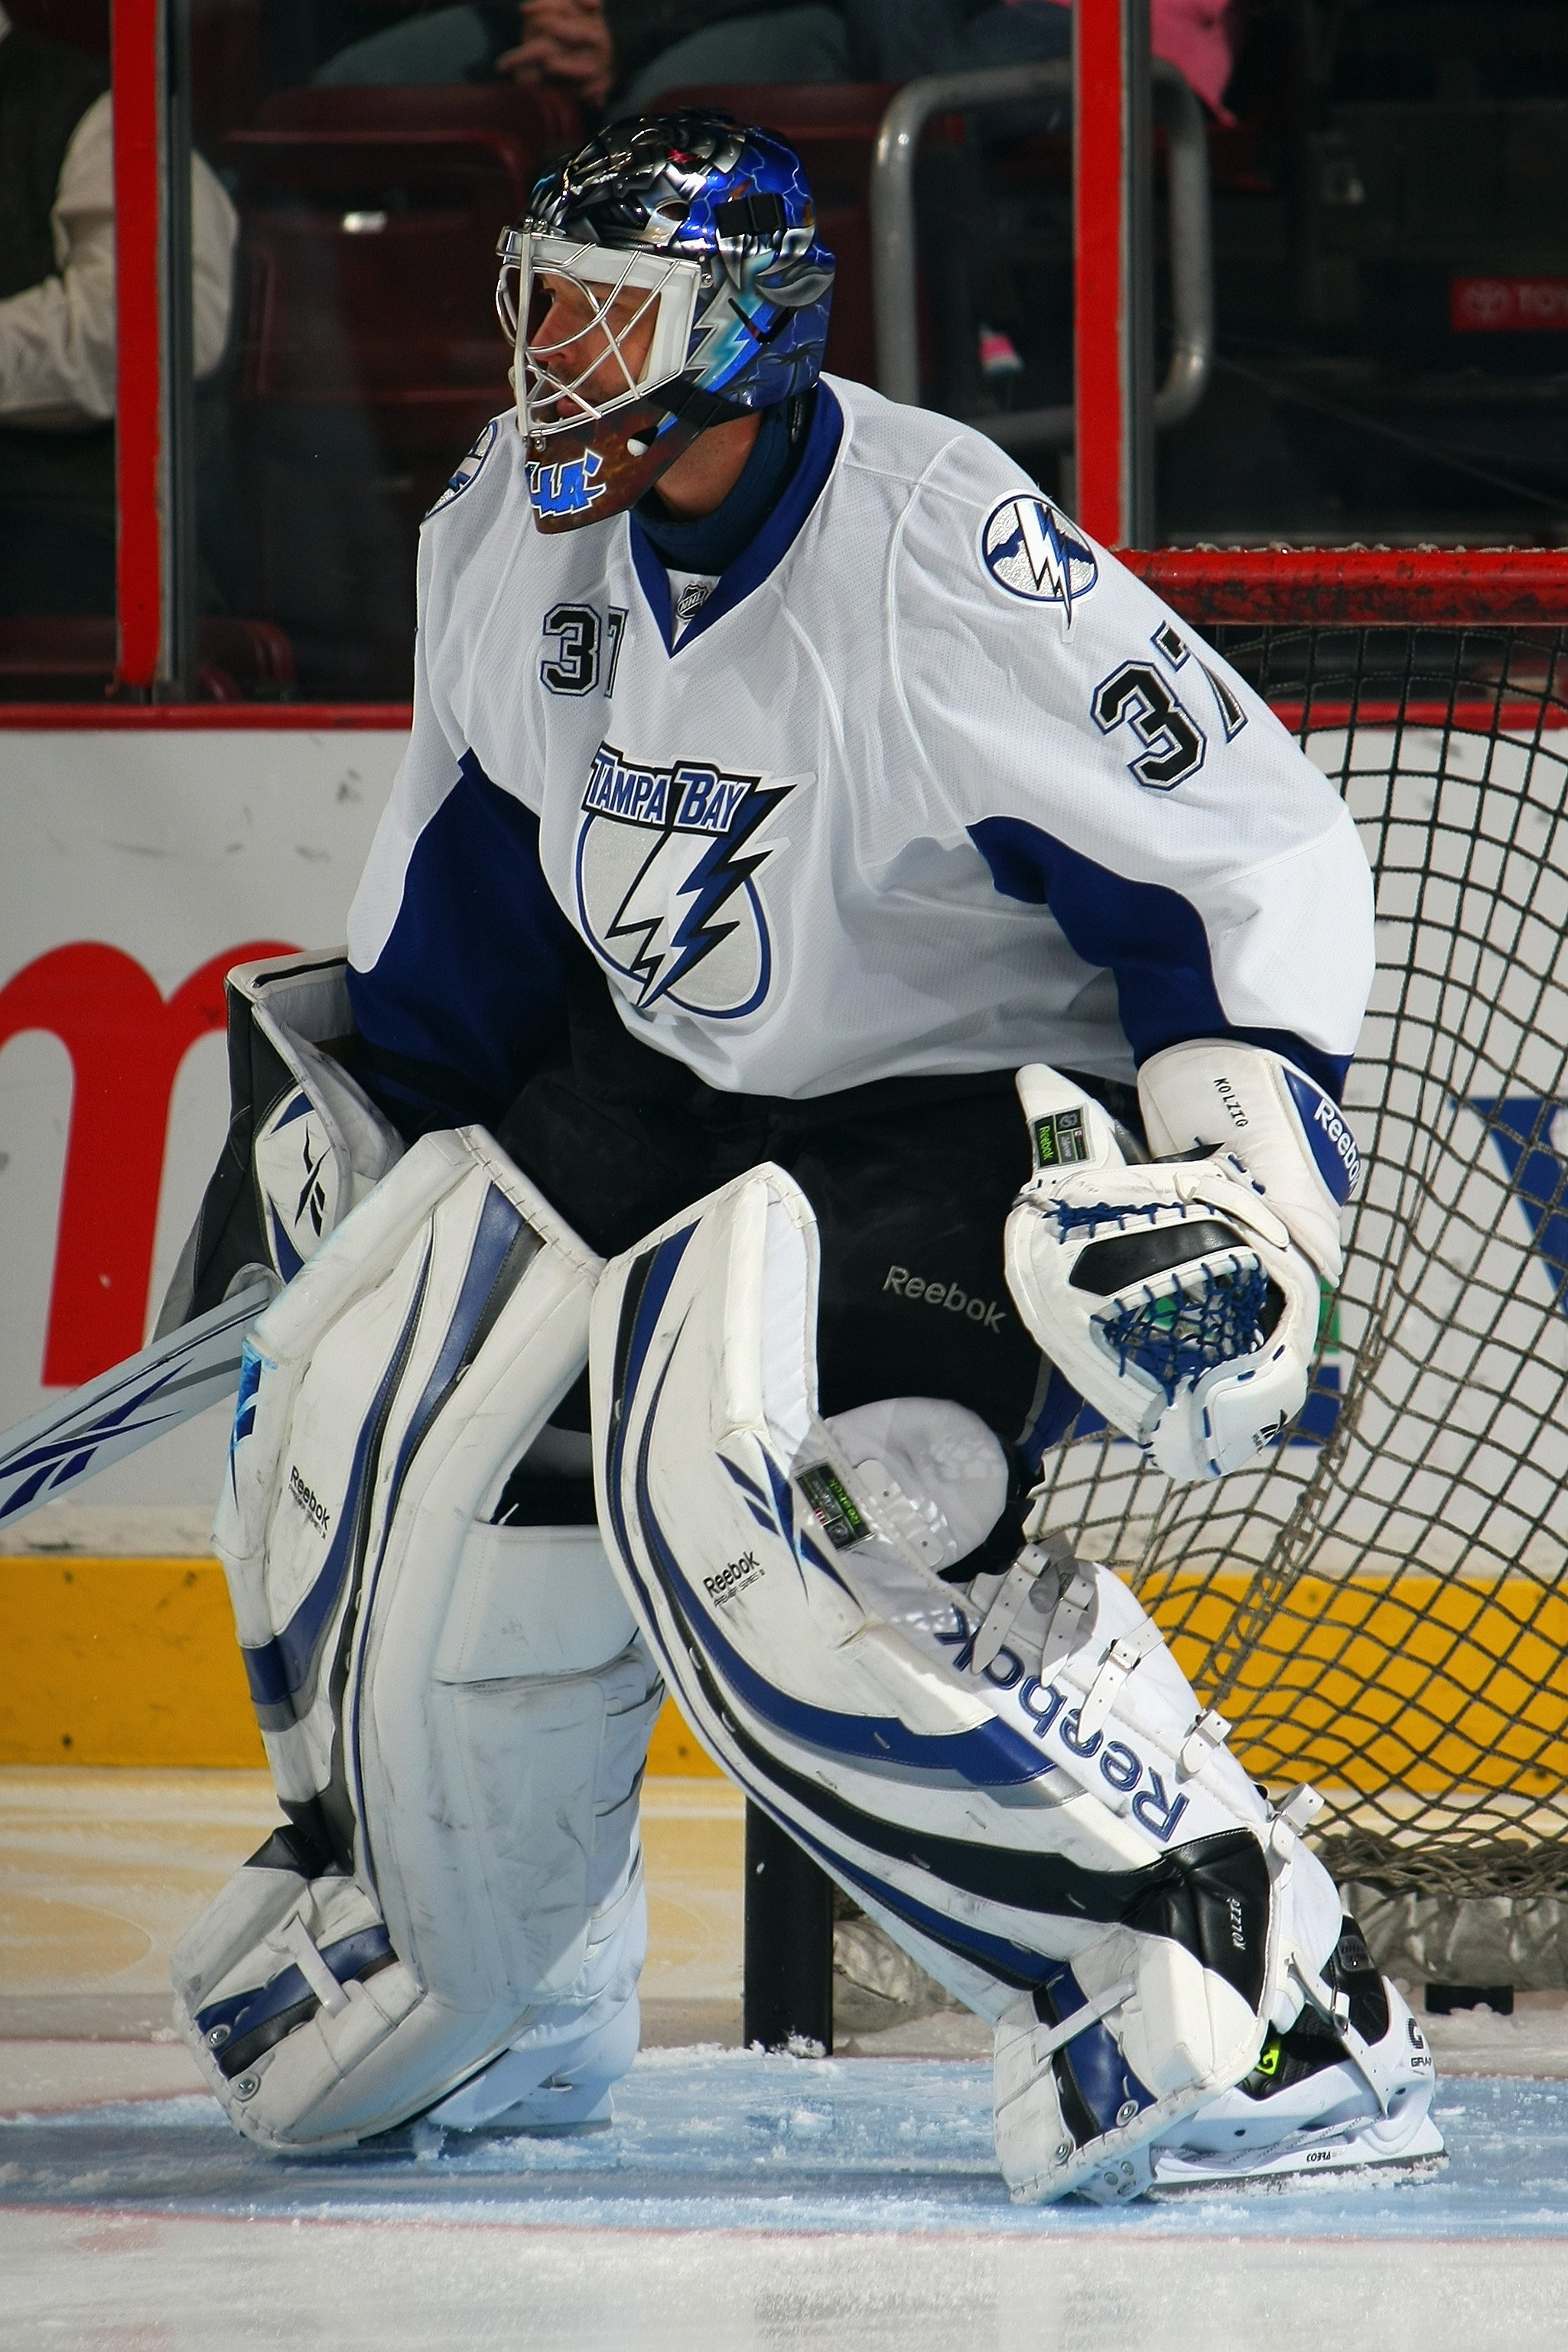 PHILADELPHIA - DECEMBER 2:  Olaf Kolzig #37 of the Tampa Bay Lightning warms up before the game against the Philadelphia Flyers on December 2, 2008 at Wachovia Center in Philadelphia, Pennsylvania. (Photo by Bruce Bennett/Getty Images)